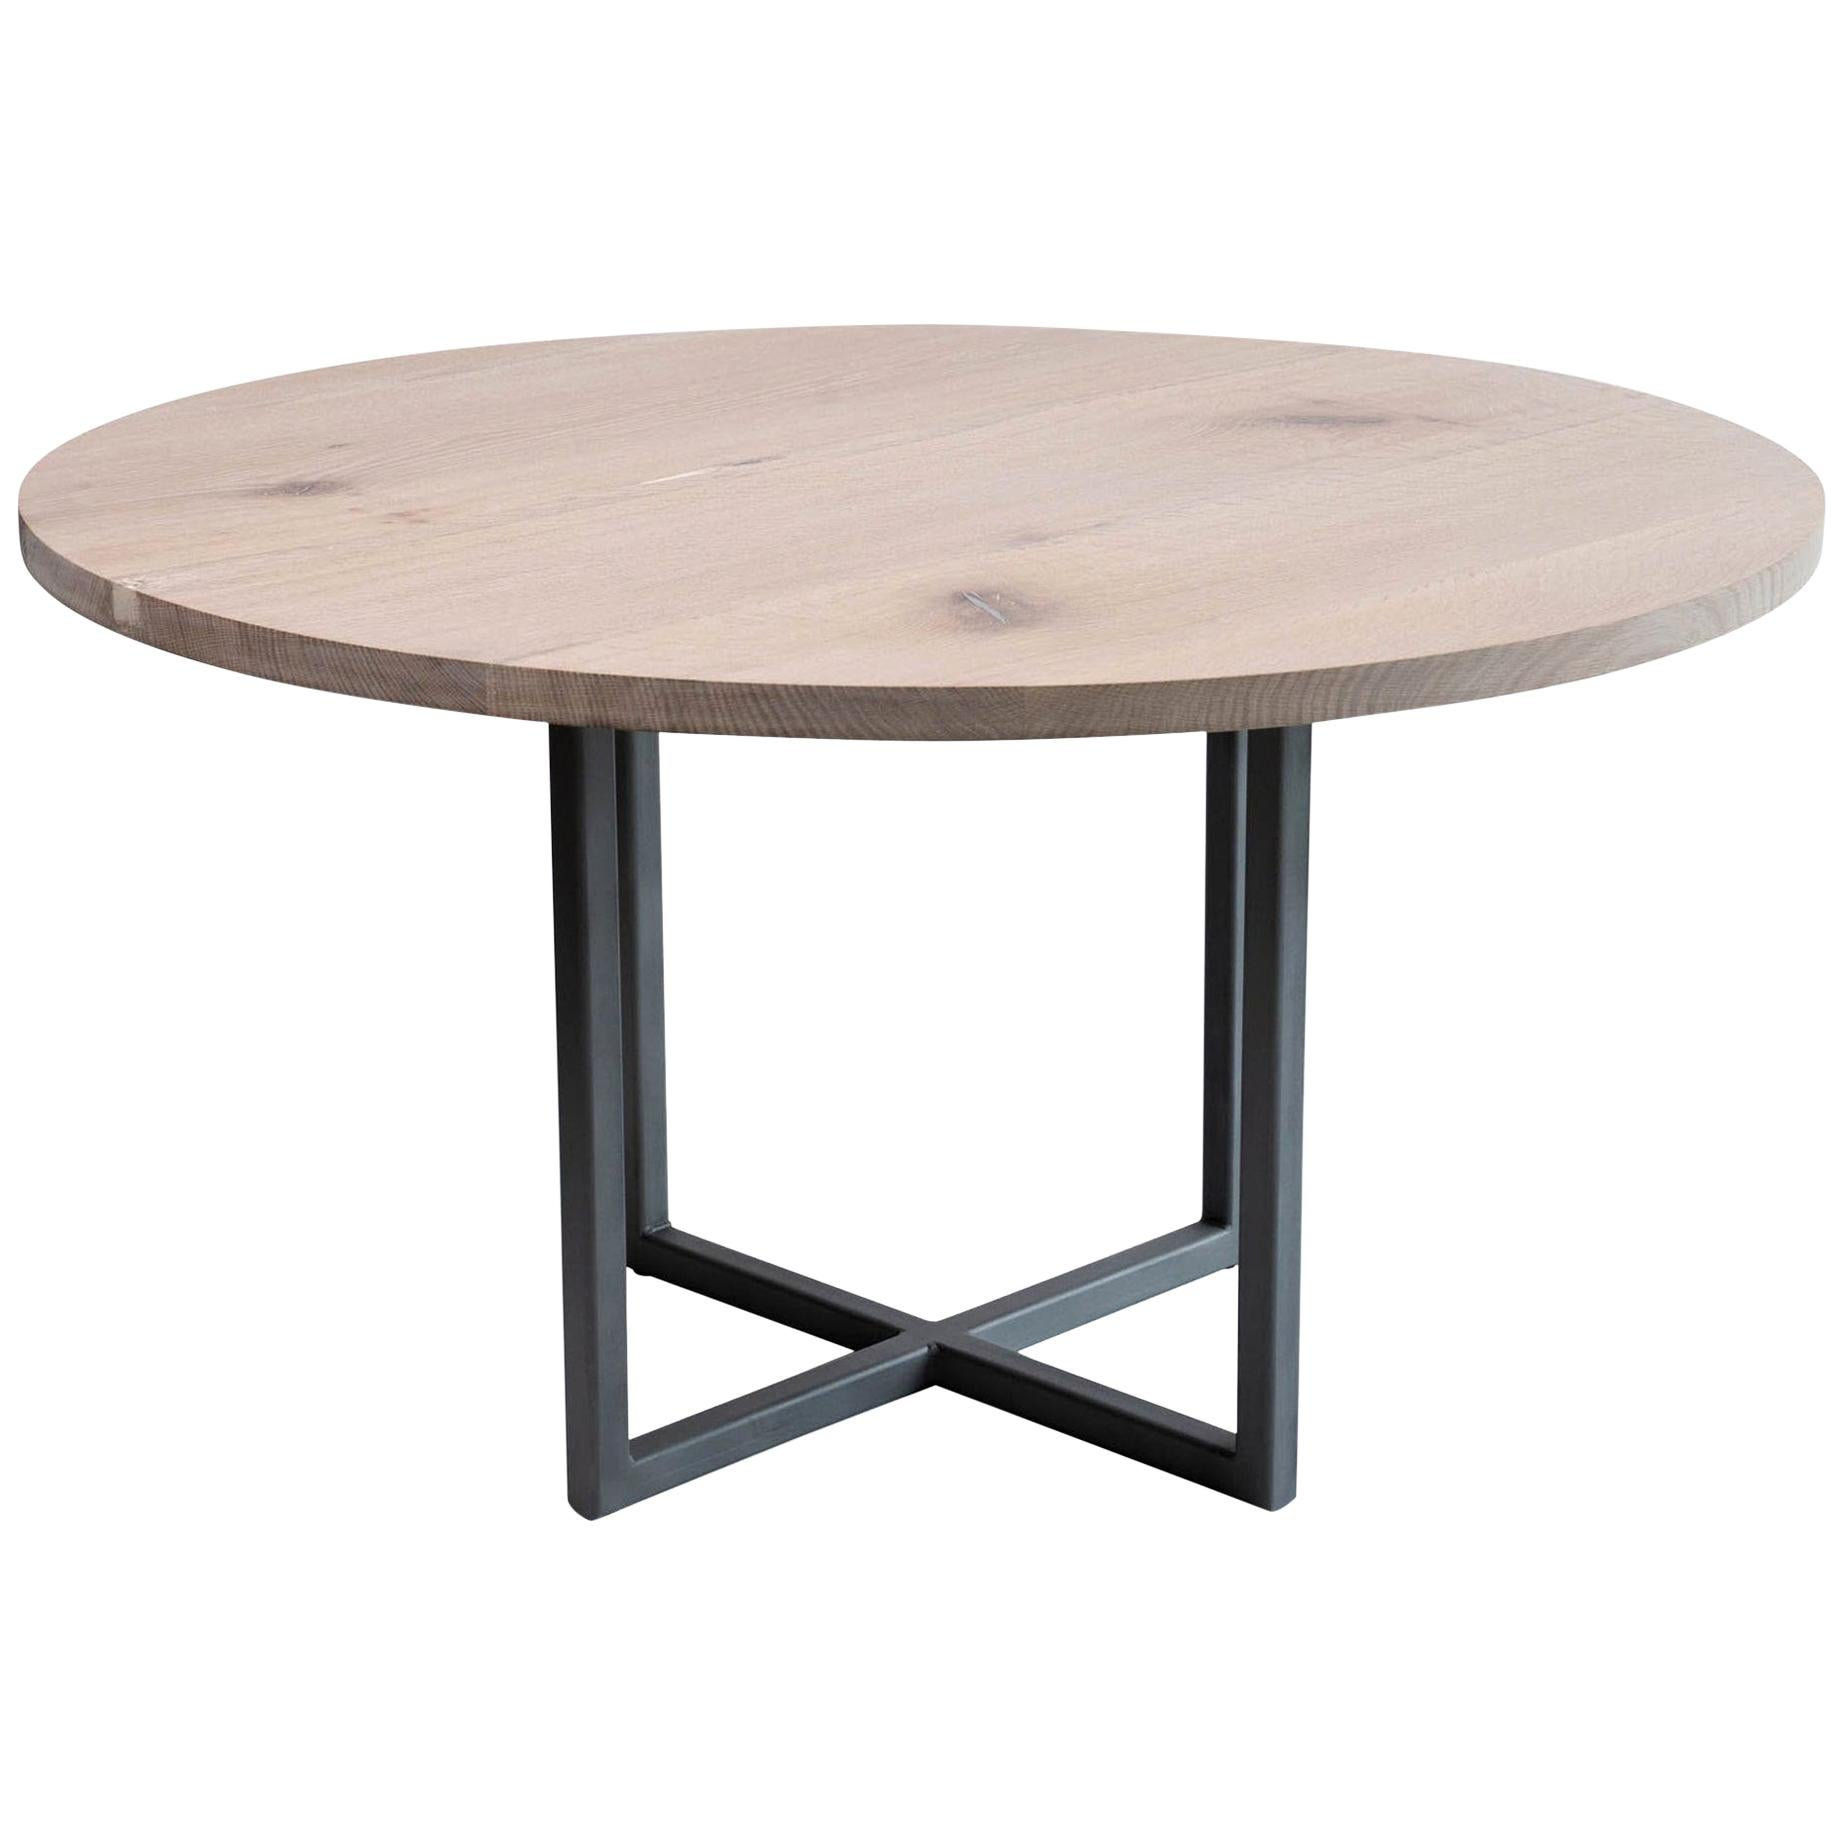 """60"""" Round Dining Table in White Oak and Pewter Inlays Modern Steel Pedestal Base"""